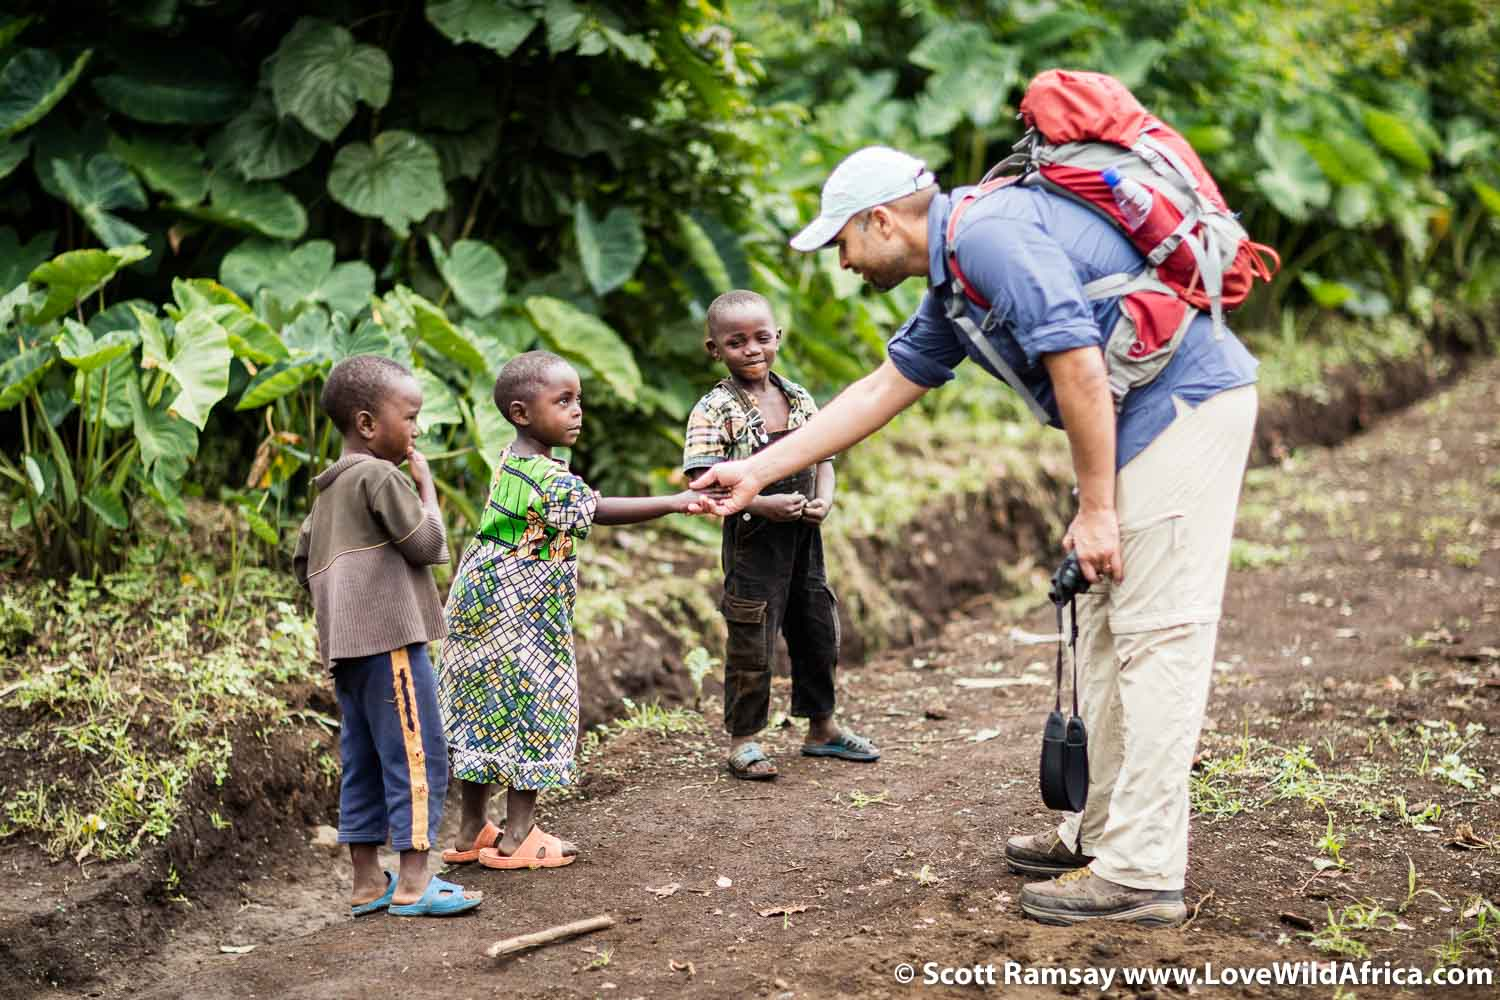 Despite the obvious dangers posed by militias and civil wars, gorilla tourism in Virunga has already drawn thousands of visitors to eastern DRC.